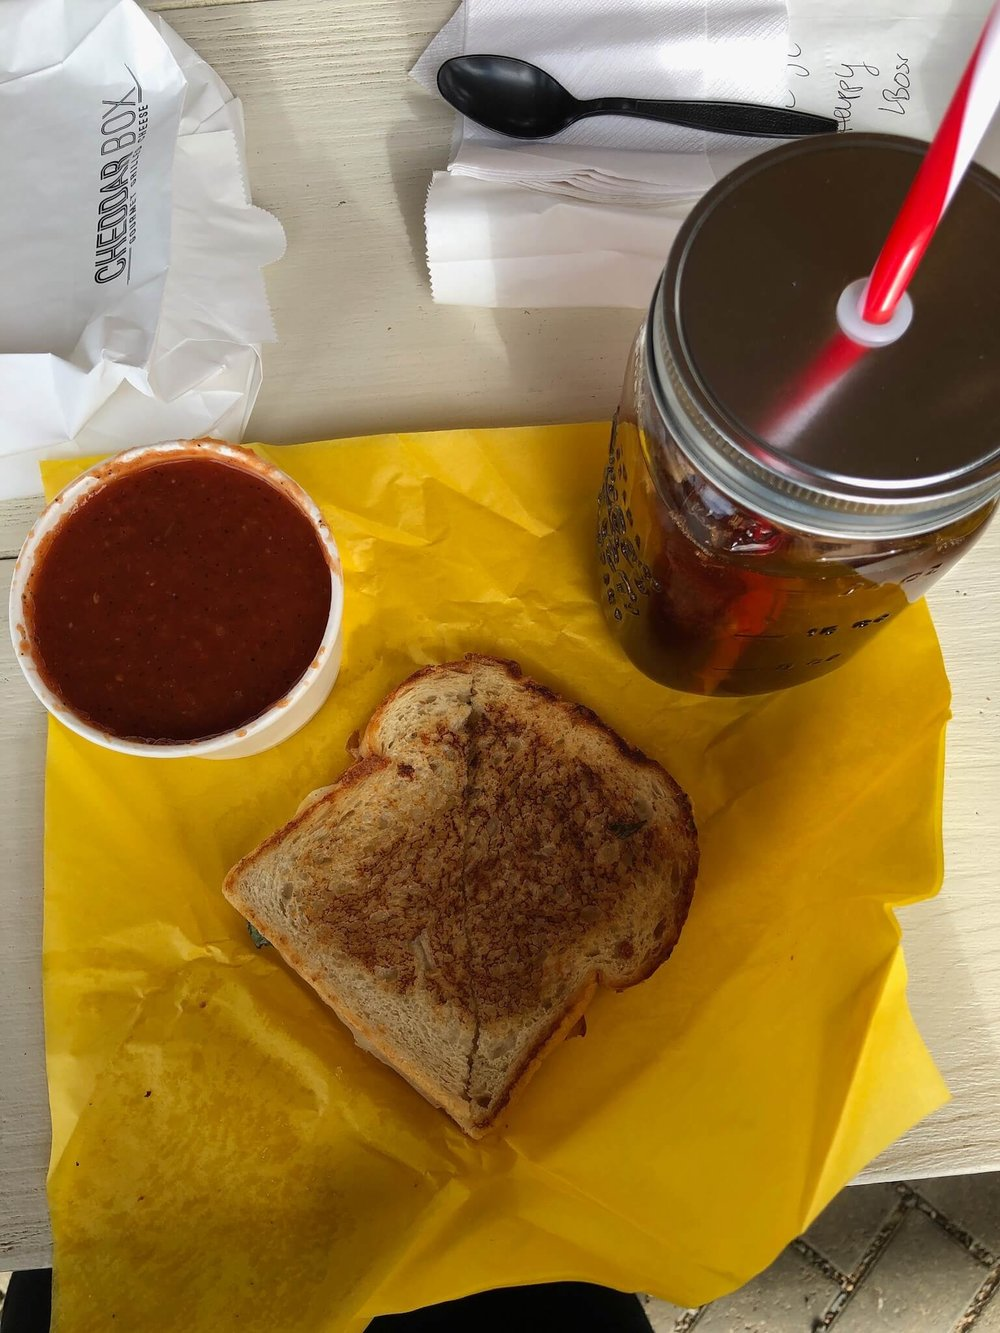 "- We ate at the Cheddar Box, where we all ordered grilled cheeses and tomato soup. As a grilled cheese LOVER, I really enjoyed my ""Boss"" grilled cheese. The soup was a little chunky for me, but was still perfect for dipping my sandwich into."